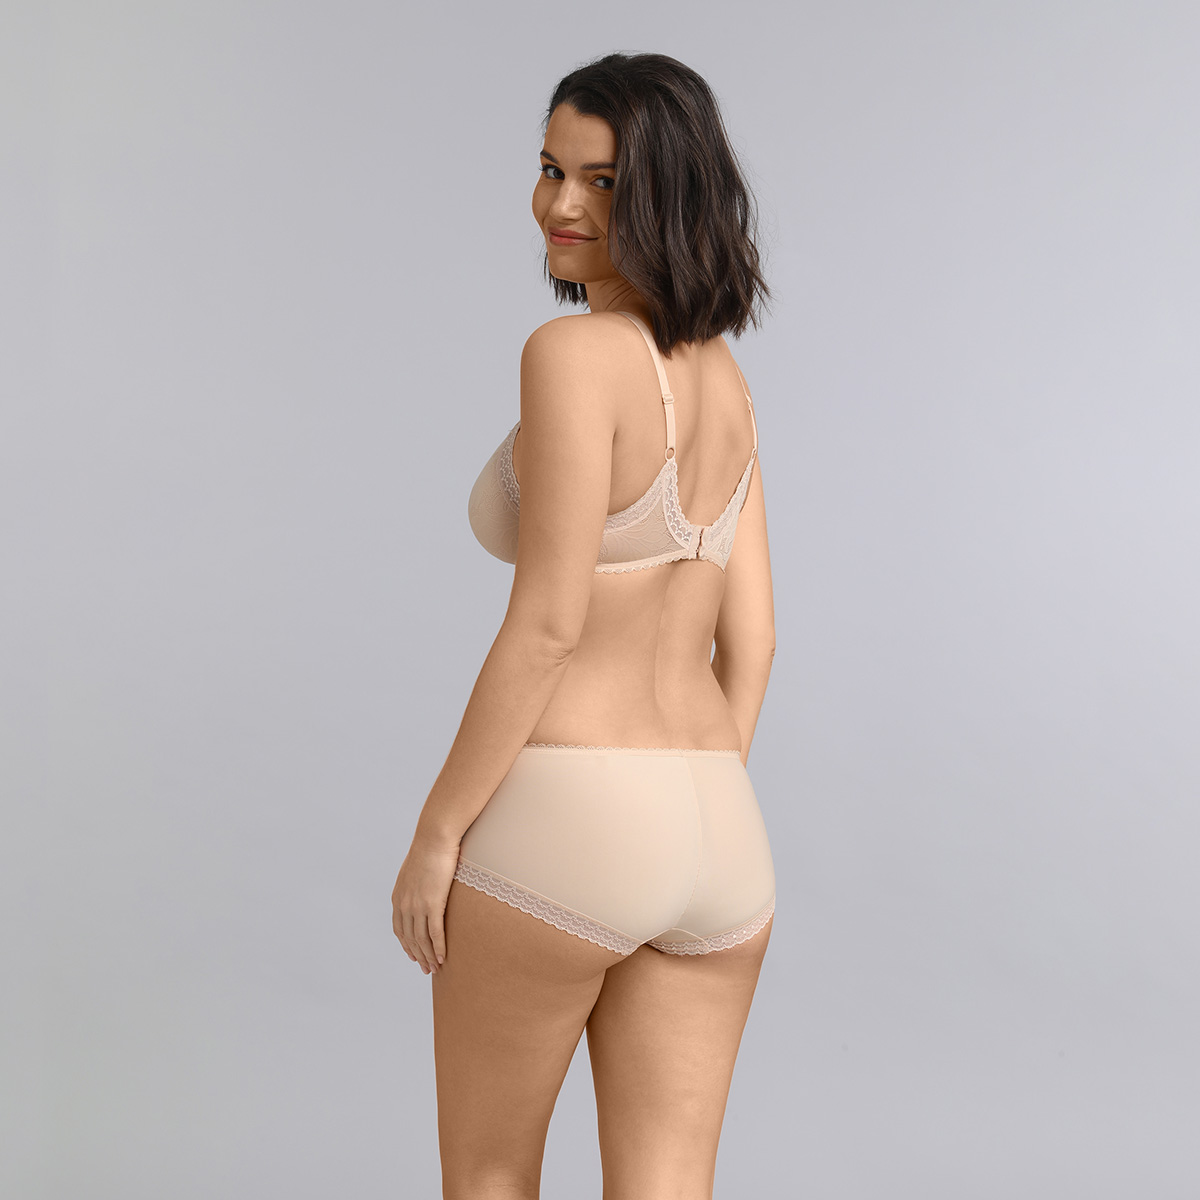 Soutien-gorge invisible triangle beige Invisible Elegance, , PLAYTEX